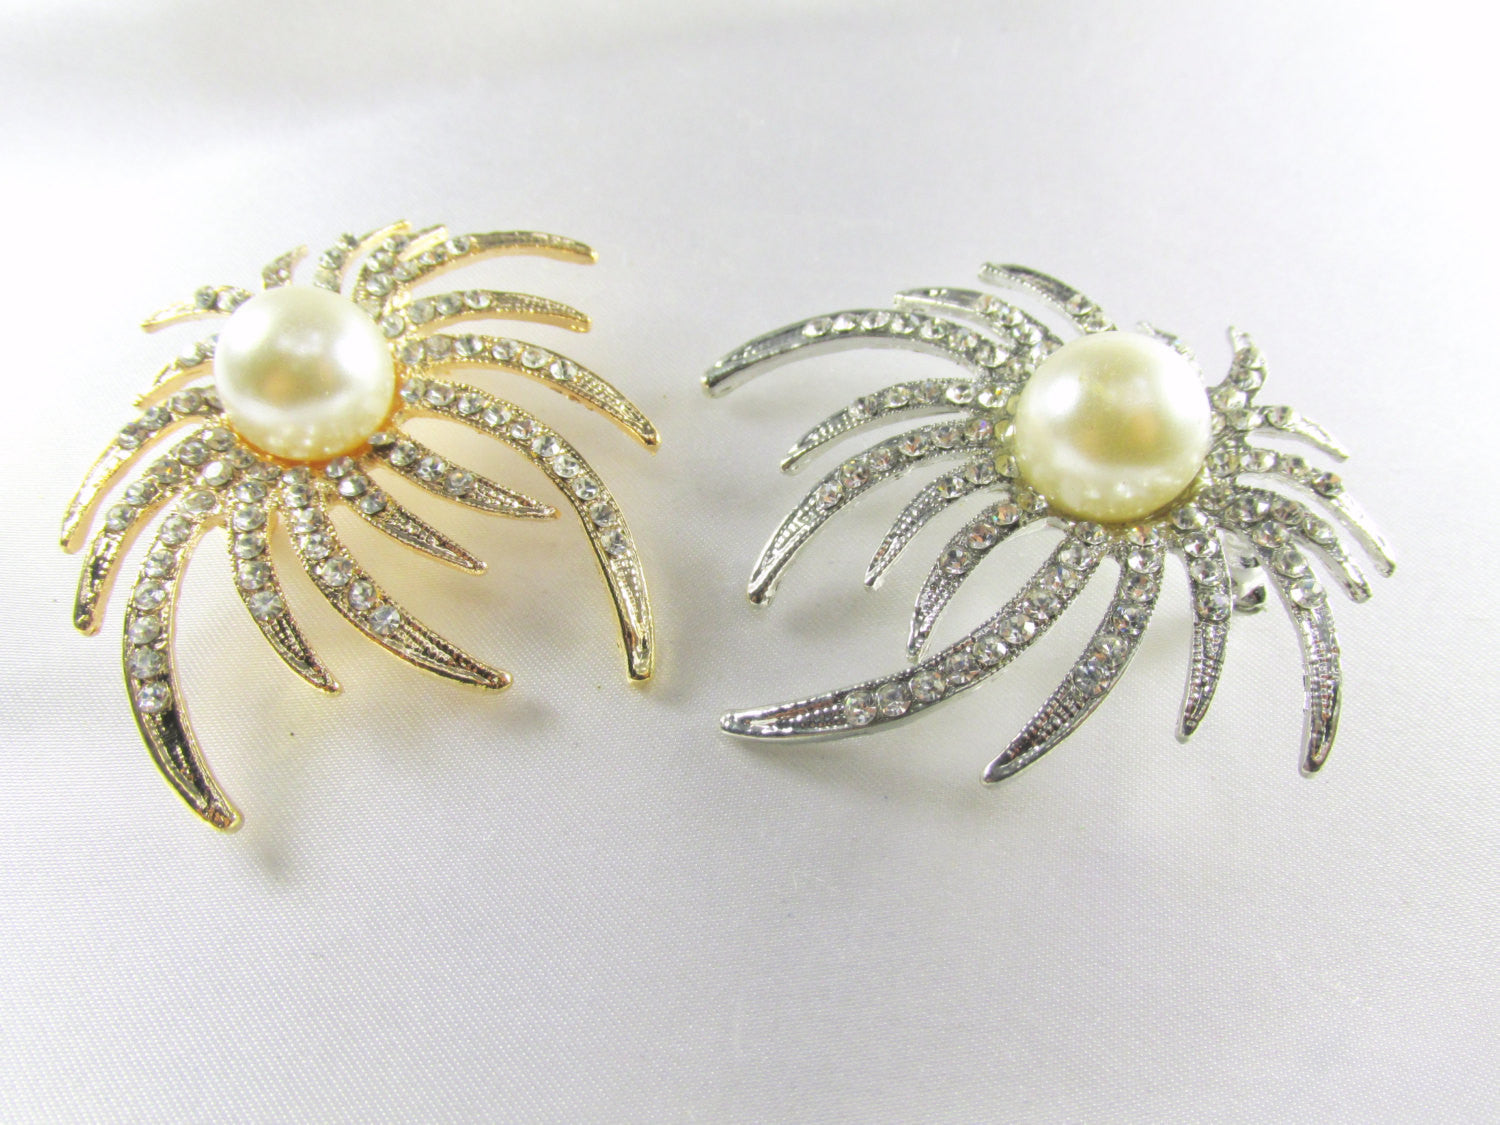 Ivory White Pearl and Clear Crystals on Gold Sunburst Brooch - Odyssey Creations